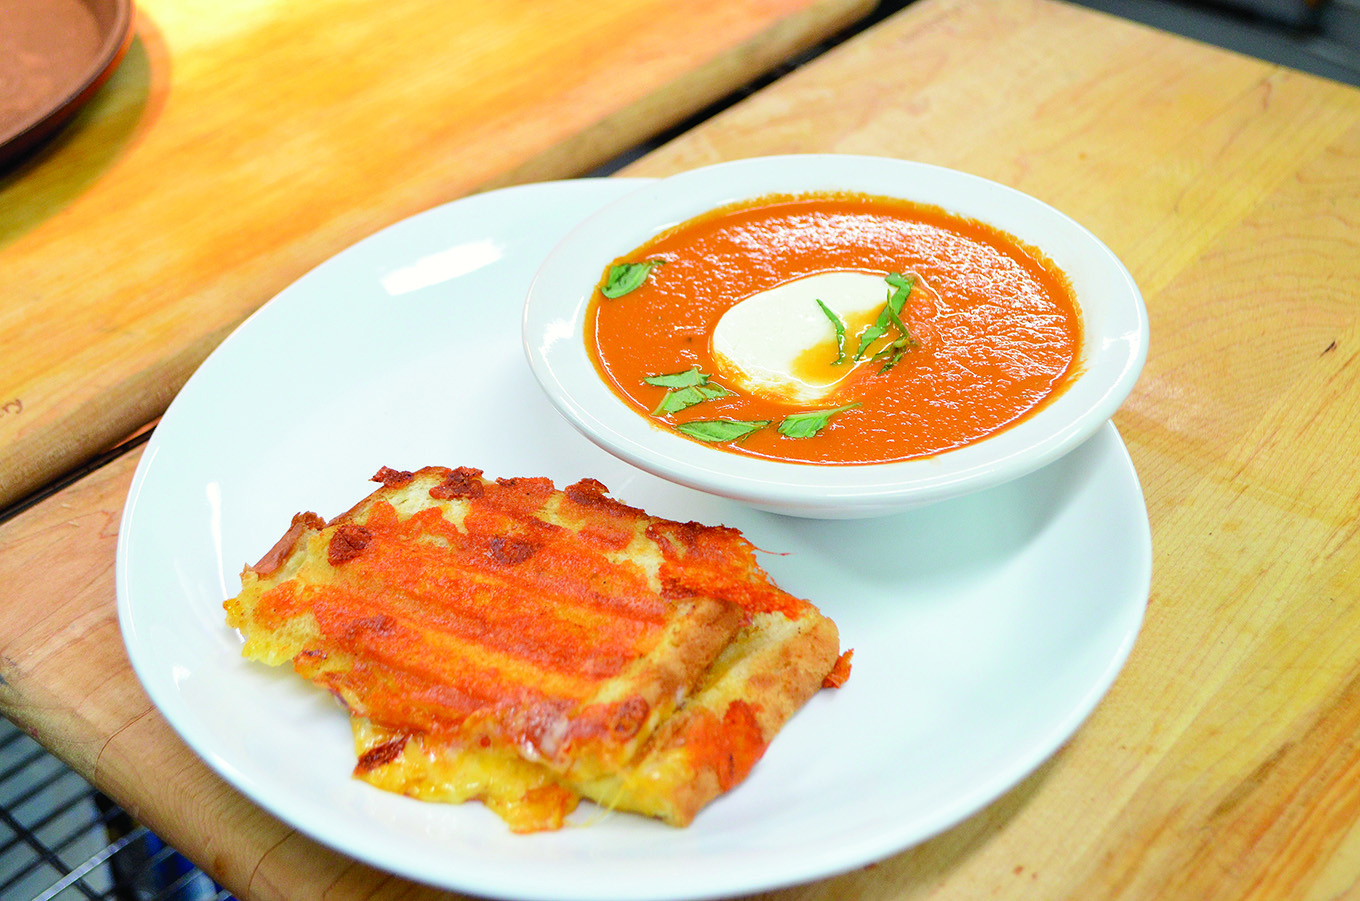 Five Loaves Bakery will offer homemade soups and sandwiches. Pictured is tomato soup with a grilled cheese sandwich.